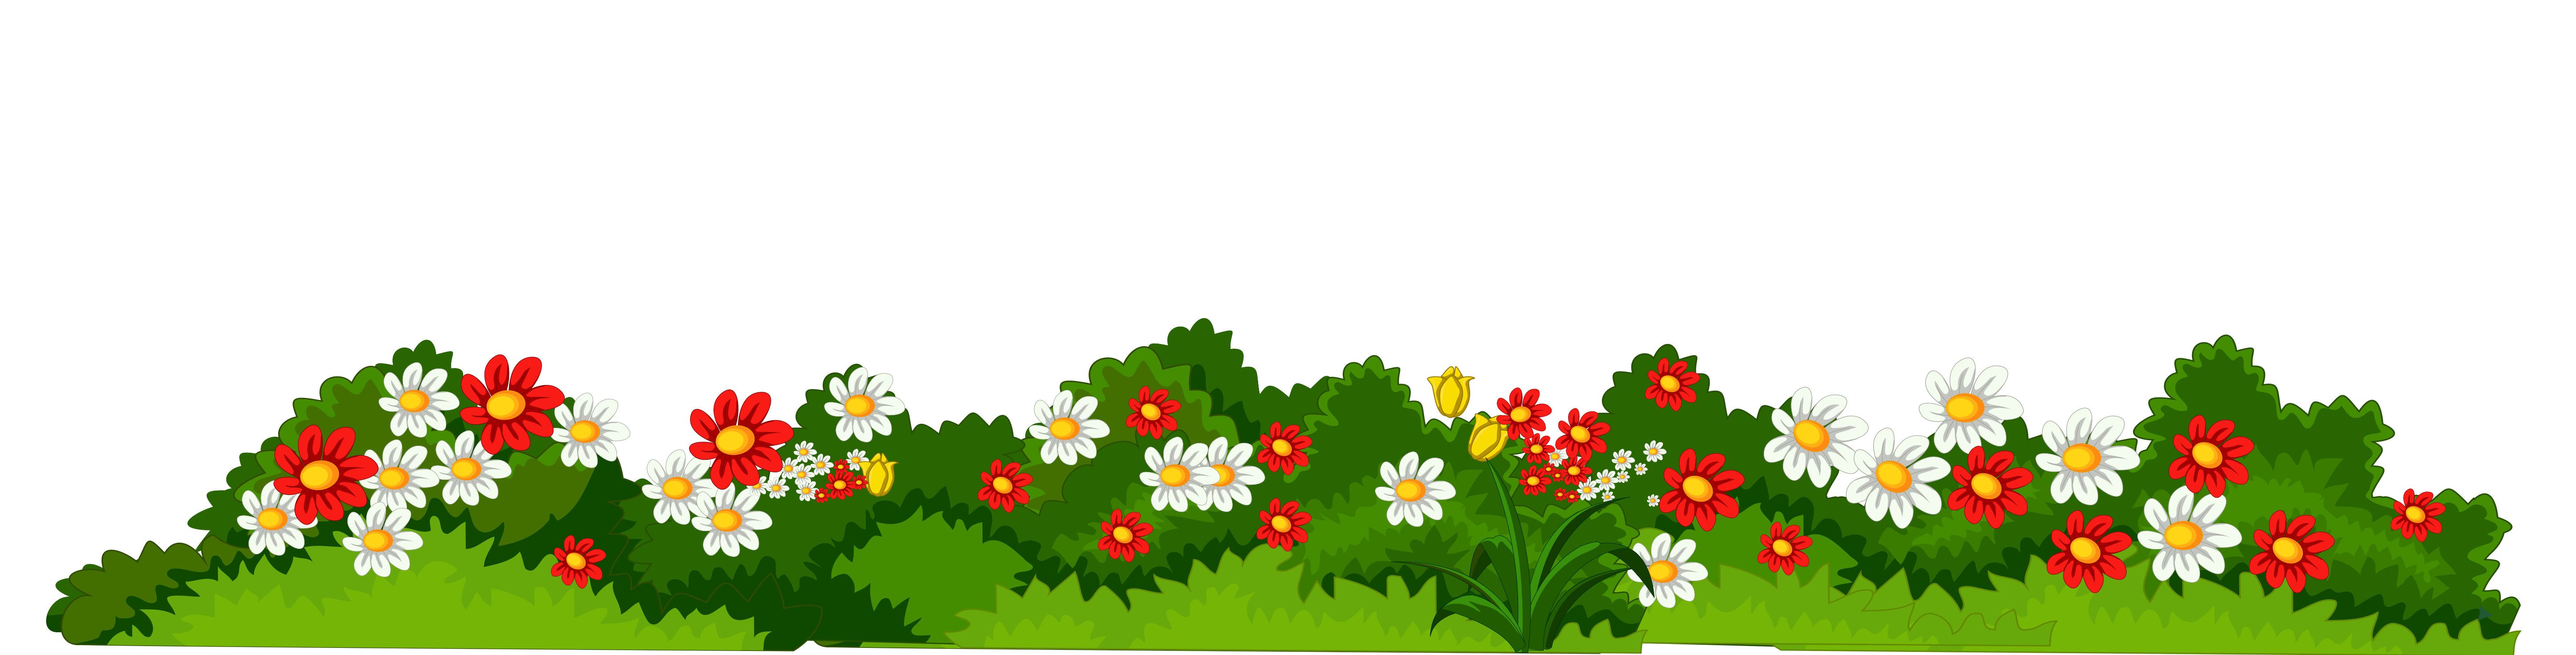 Poppy clipart fence border. Flowers with grass transparent